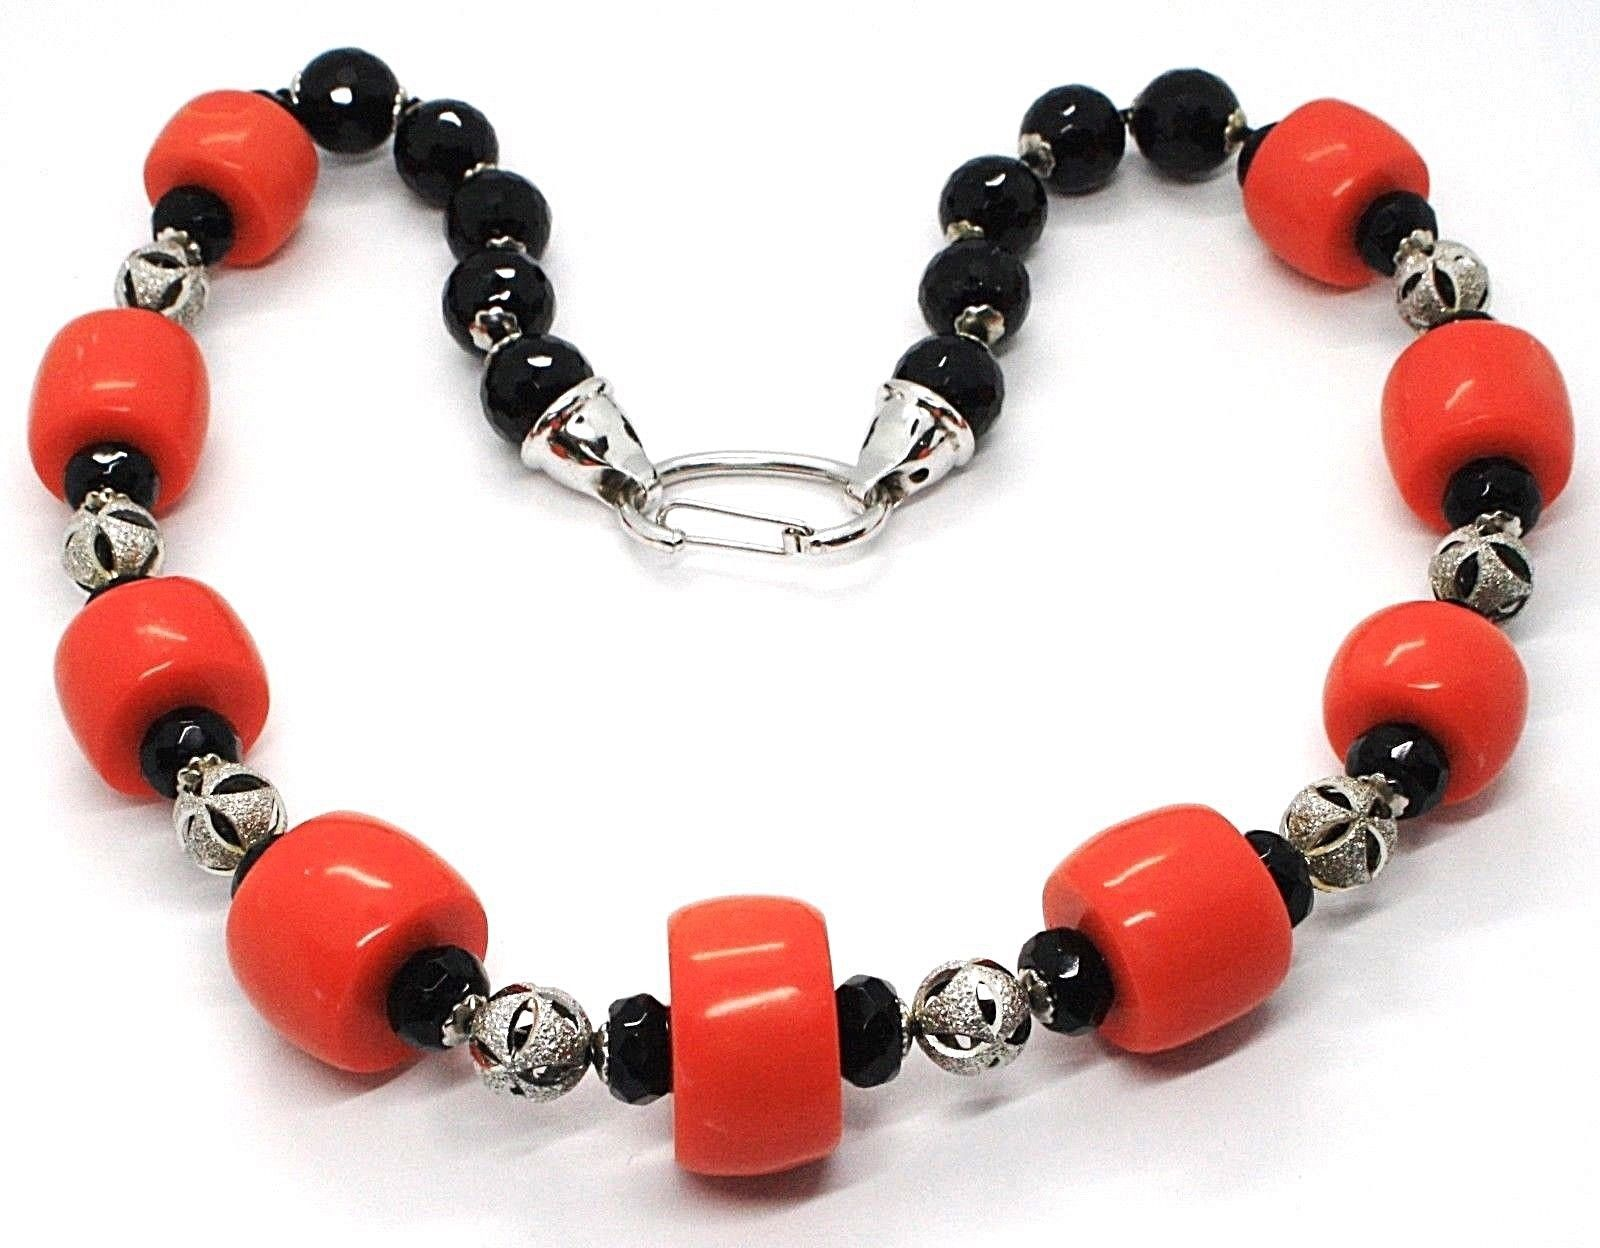 Silver necklace 925, Onyx Black Round, Discs Coral, alternated